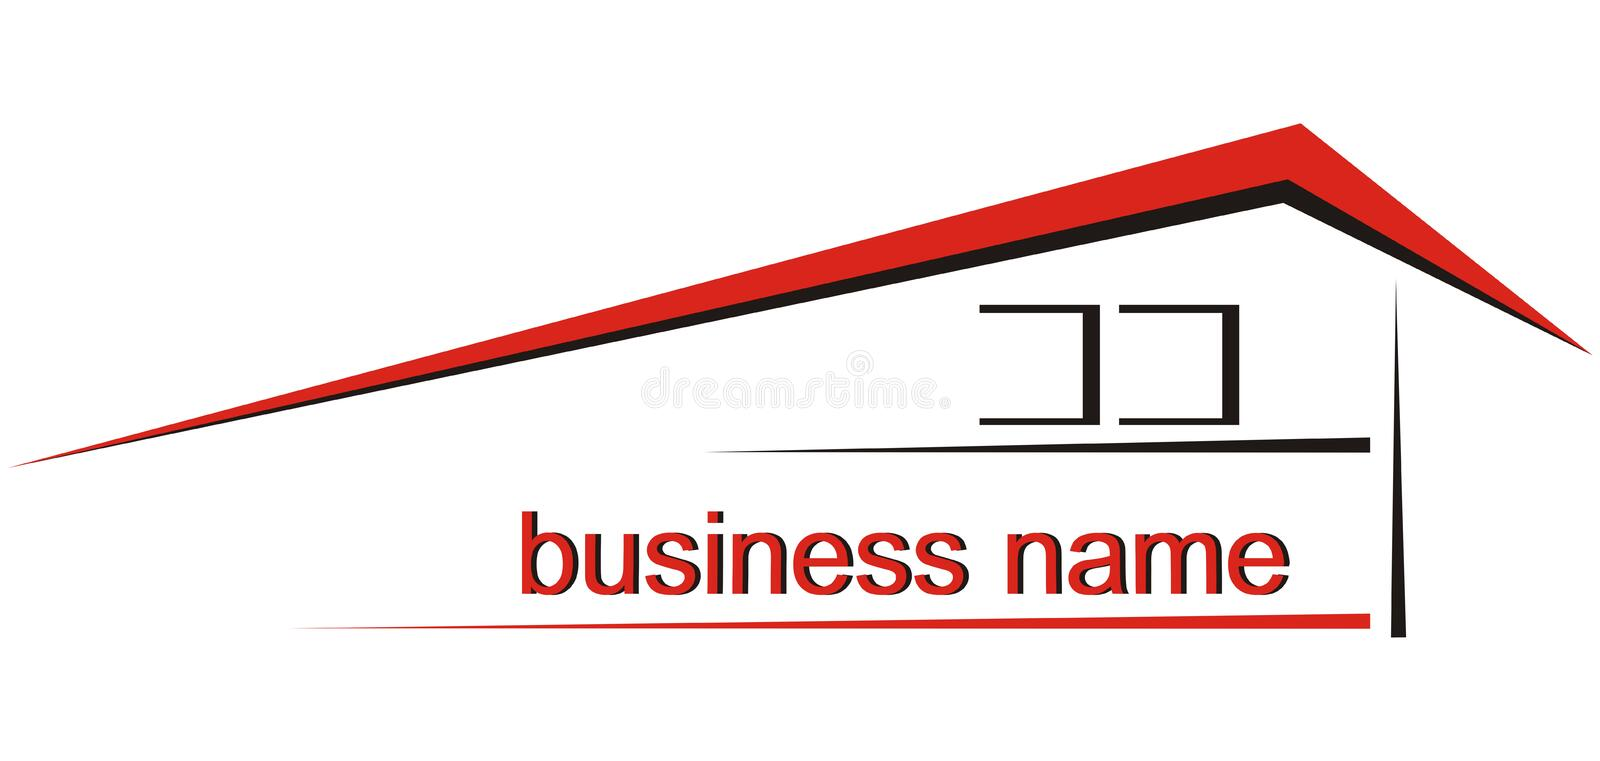 Roof - business name